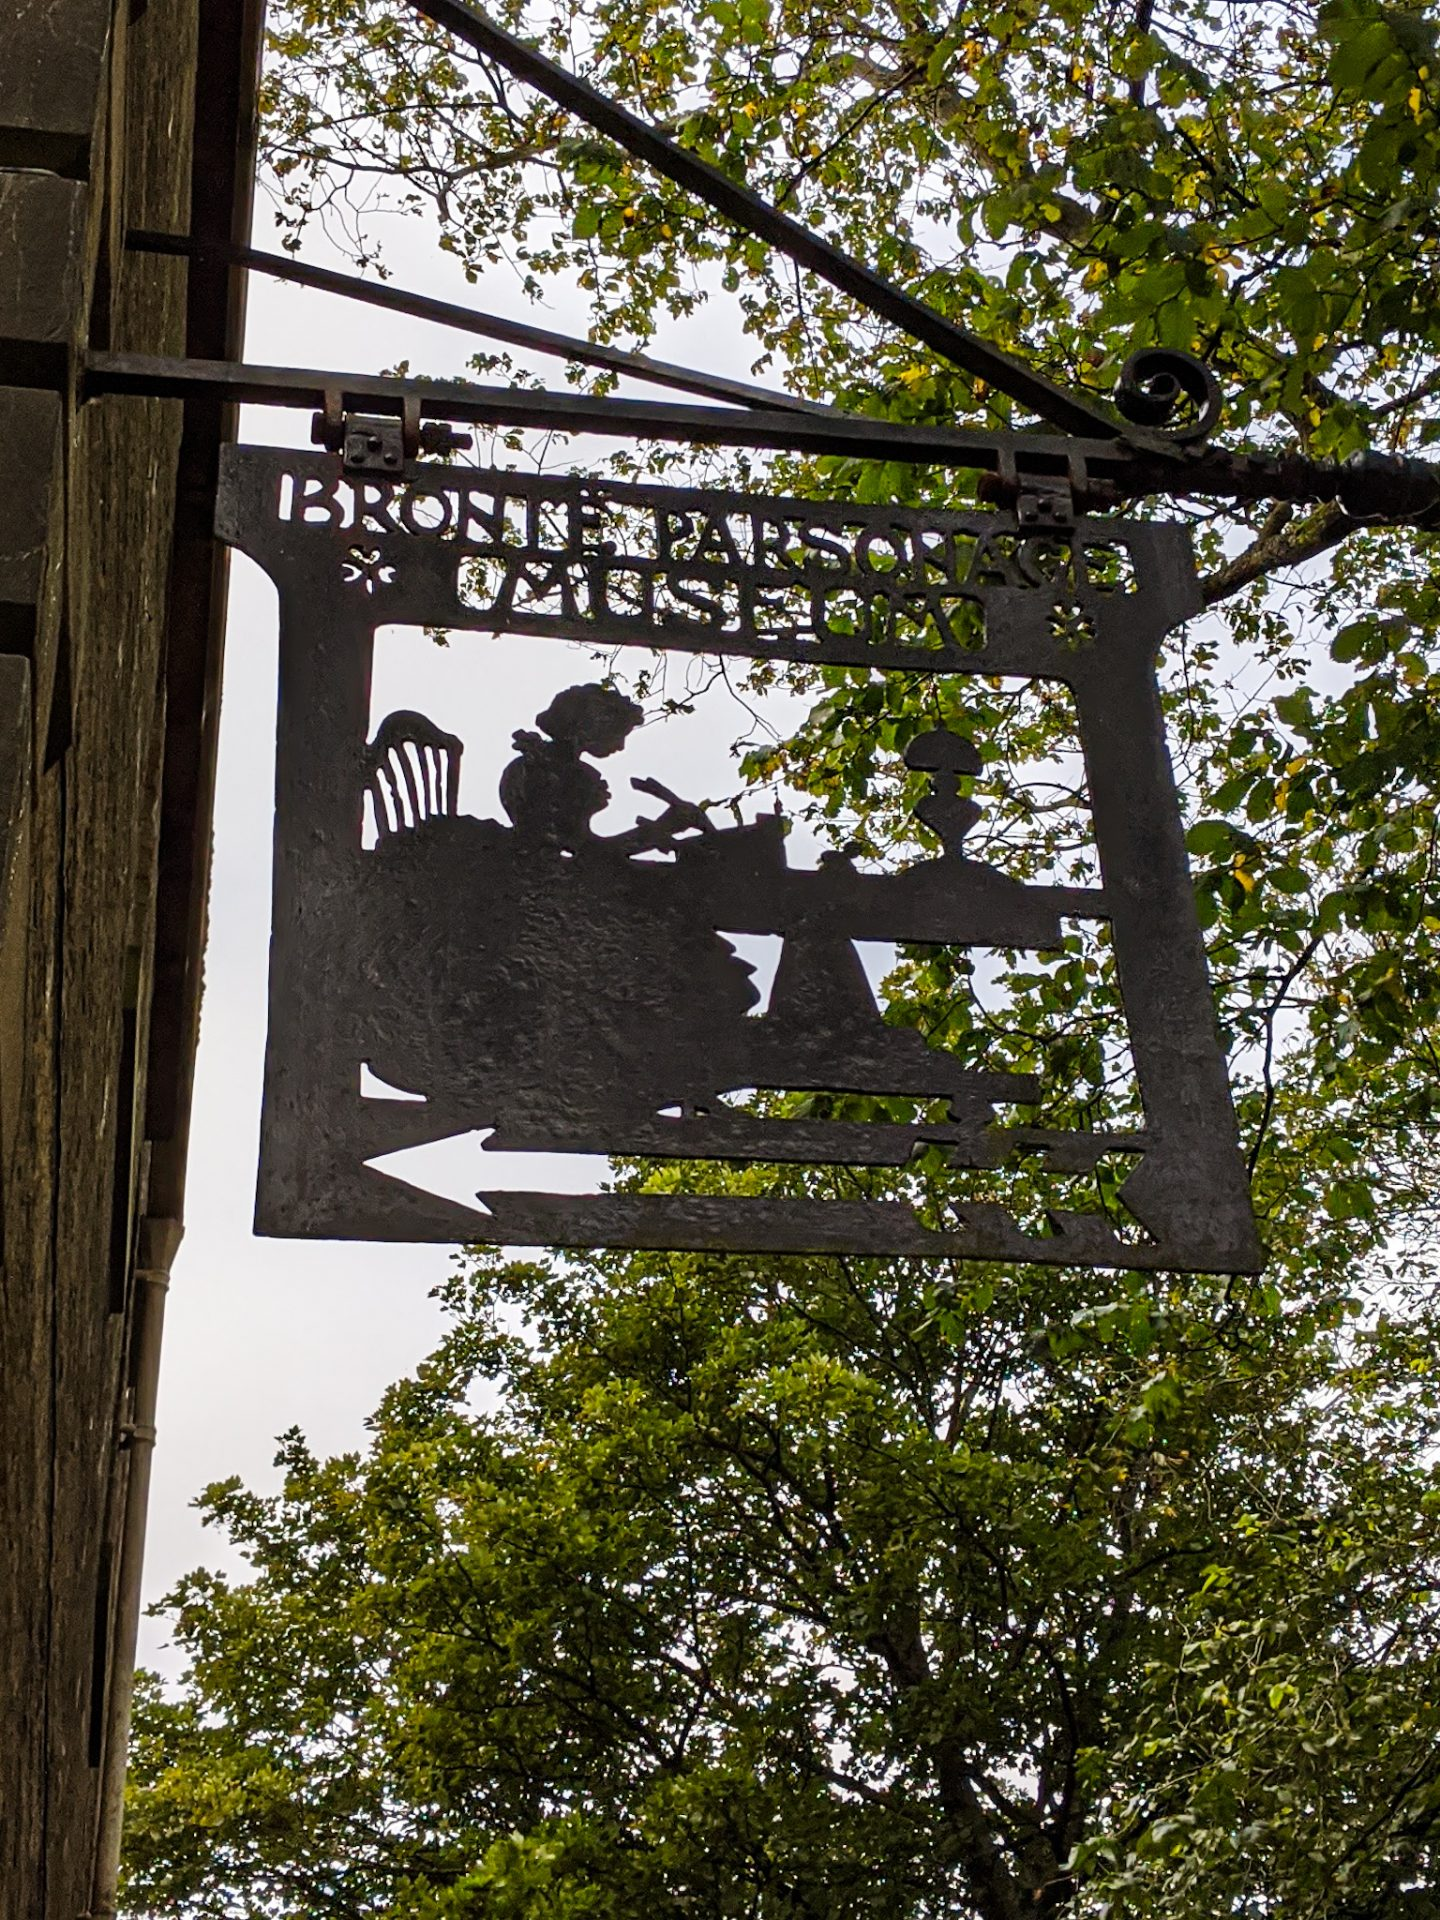 The sign outside the Brontë Parsonage Museum